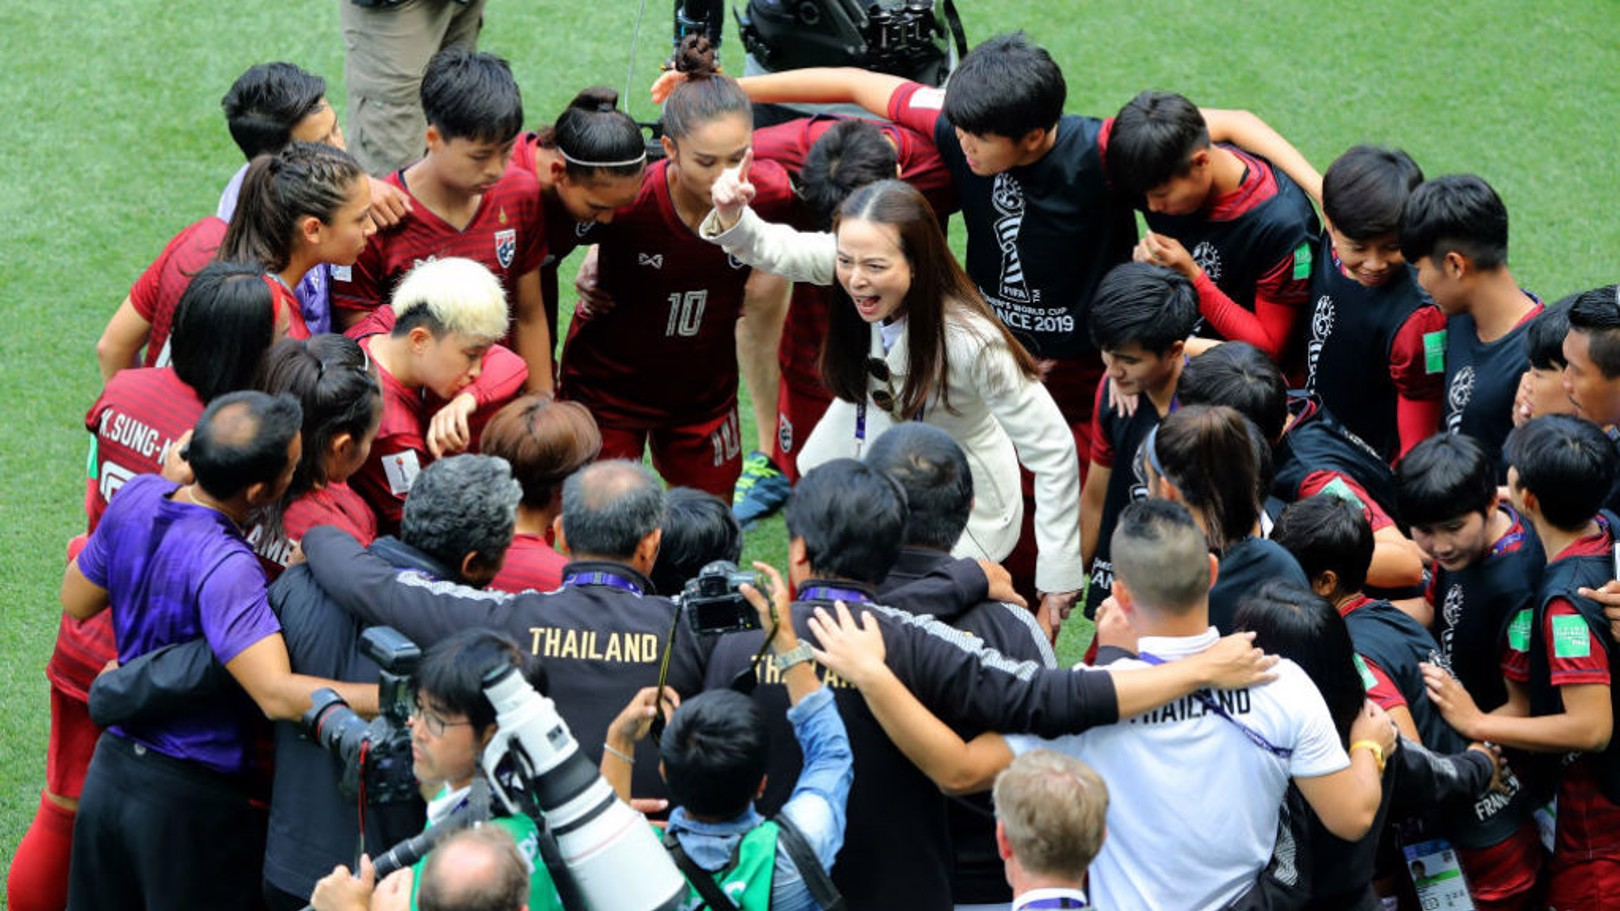 LAYING DOWN THE LORE: Manager Nualphan Lamsam gives instructions to the Thailand players in a team huddle prior to the 2019 Women's World Cup  group F match with Sweden